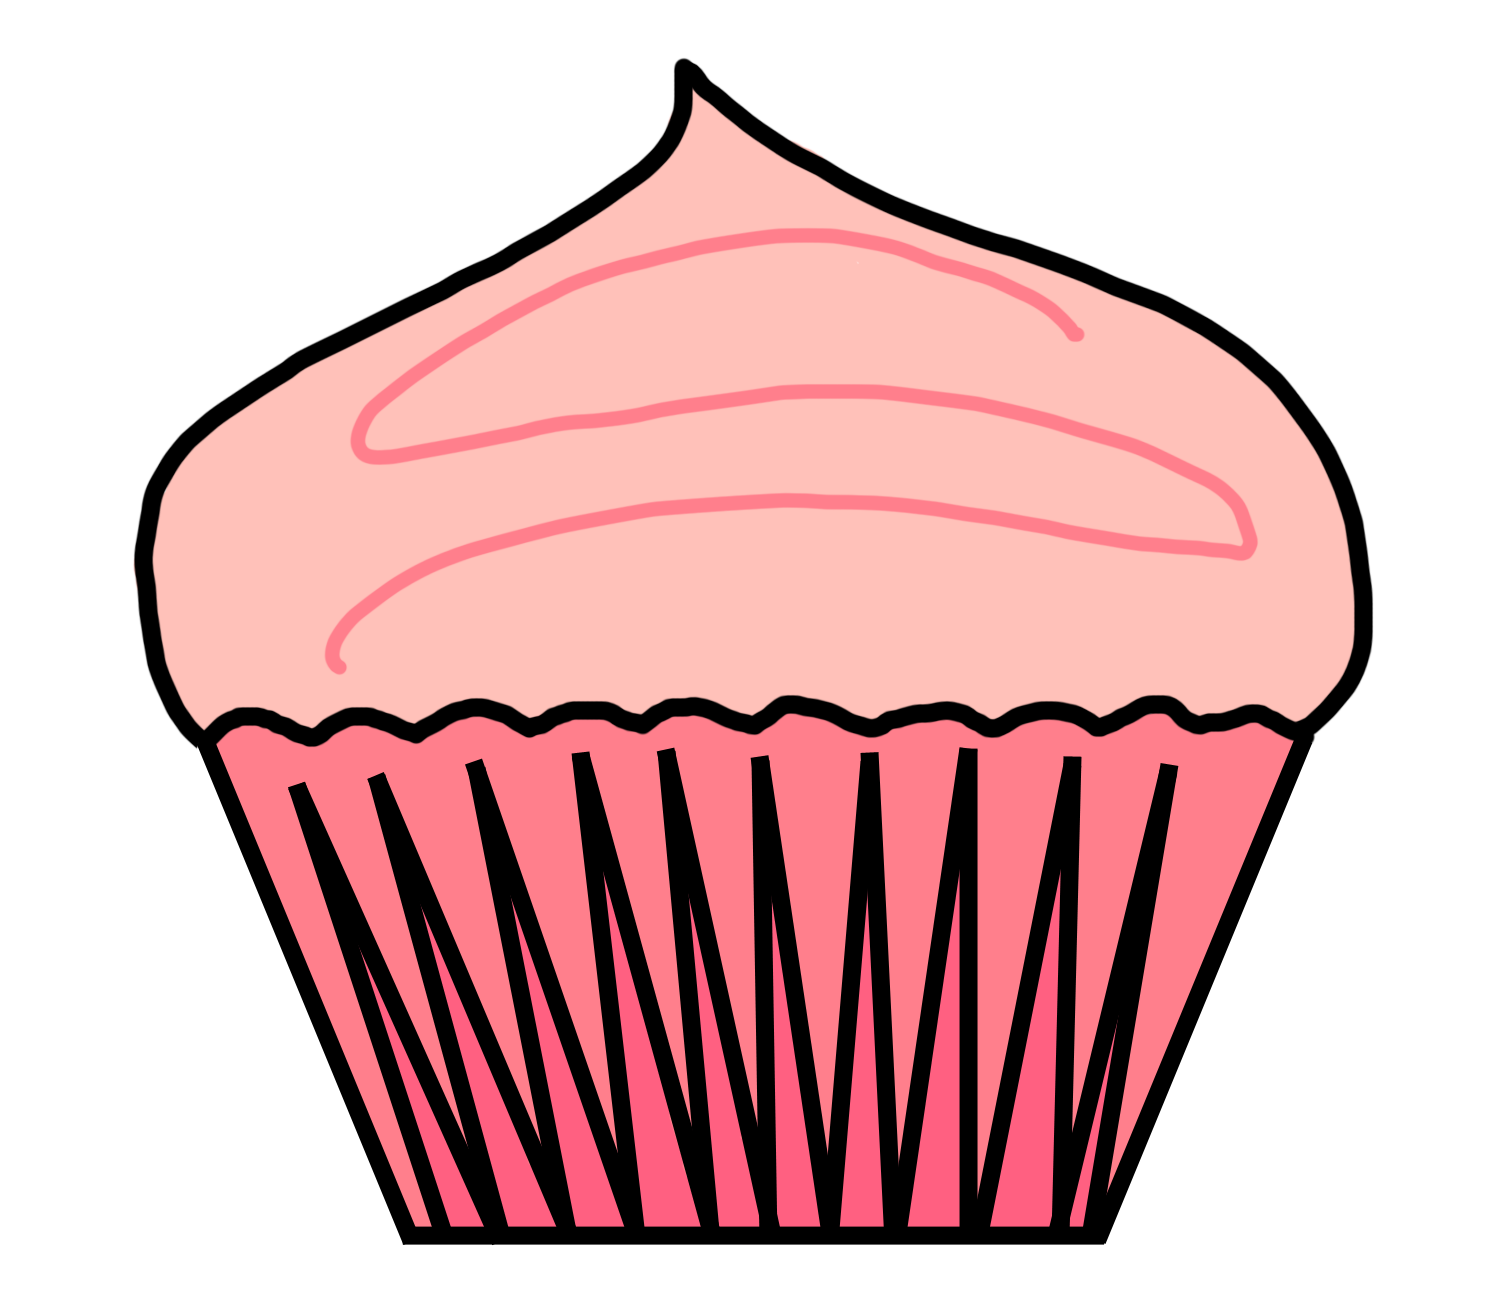 clipart library library Cupcake Clip Art Outline